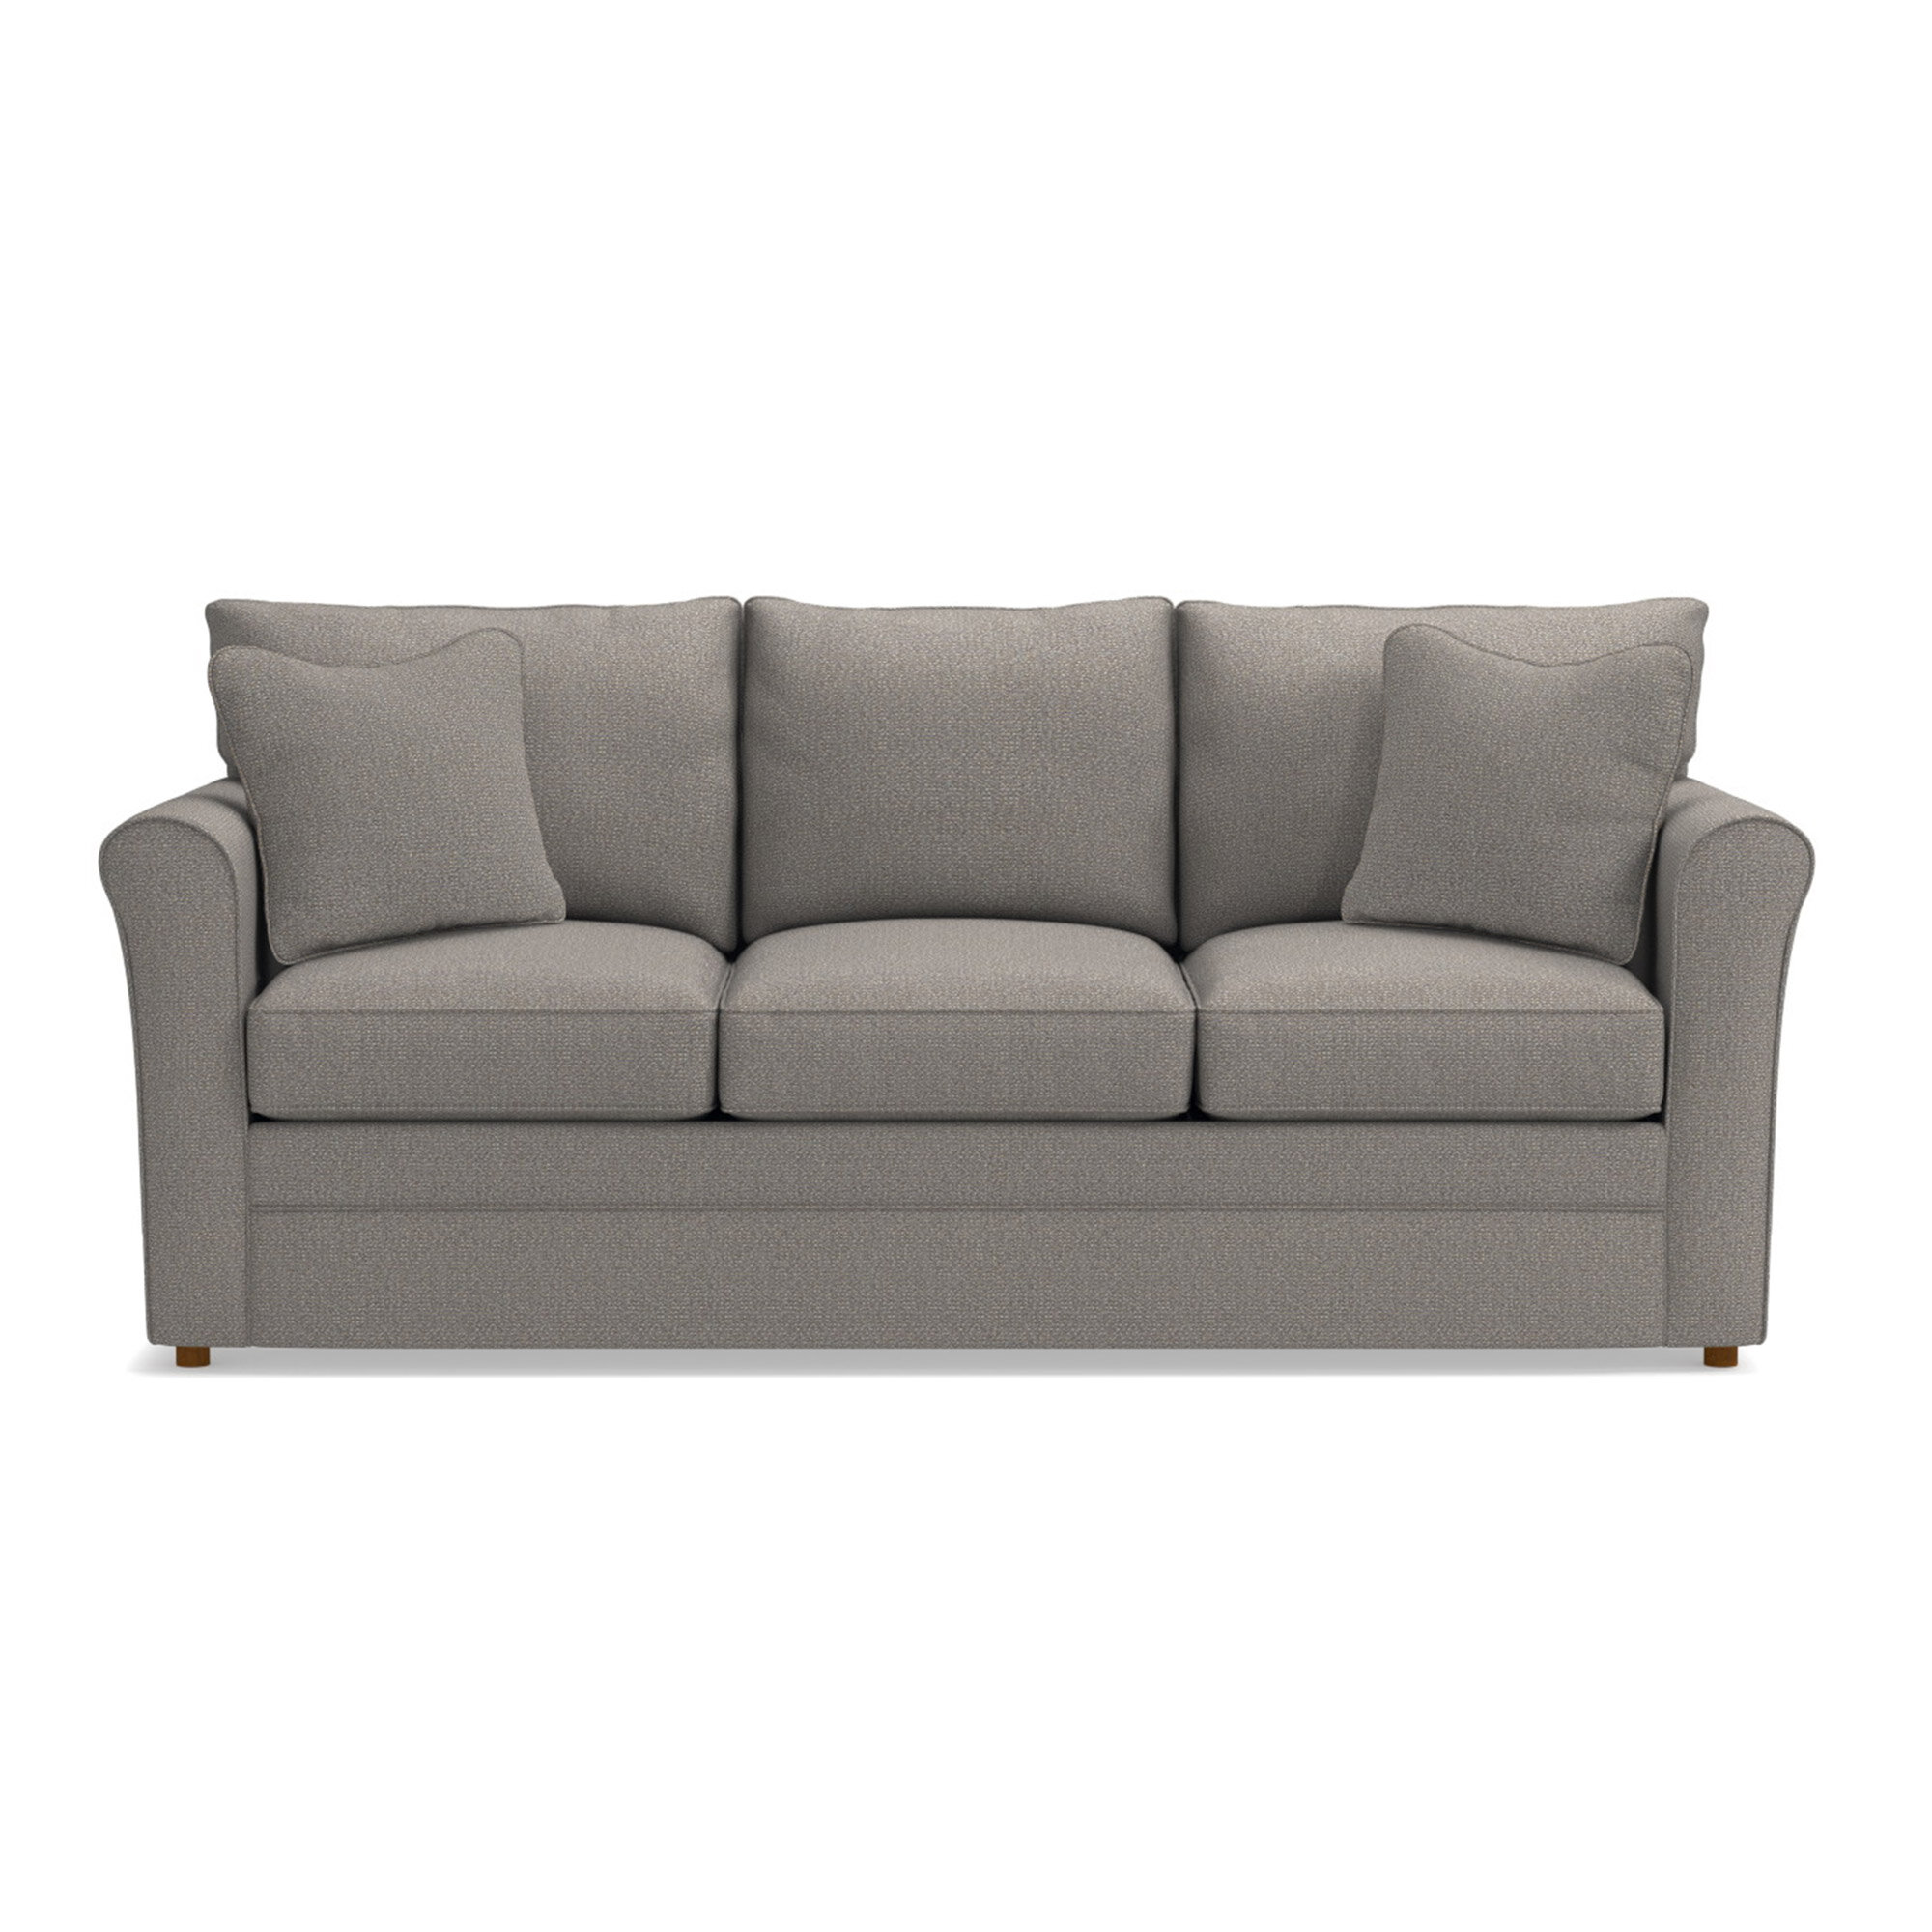 Terrific Leah Supreme Comfort Sofa Bed Evergreenethics Interior Chair Design Evergreenethicsorg